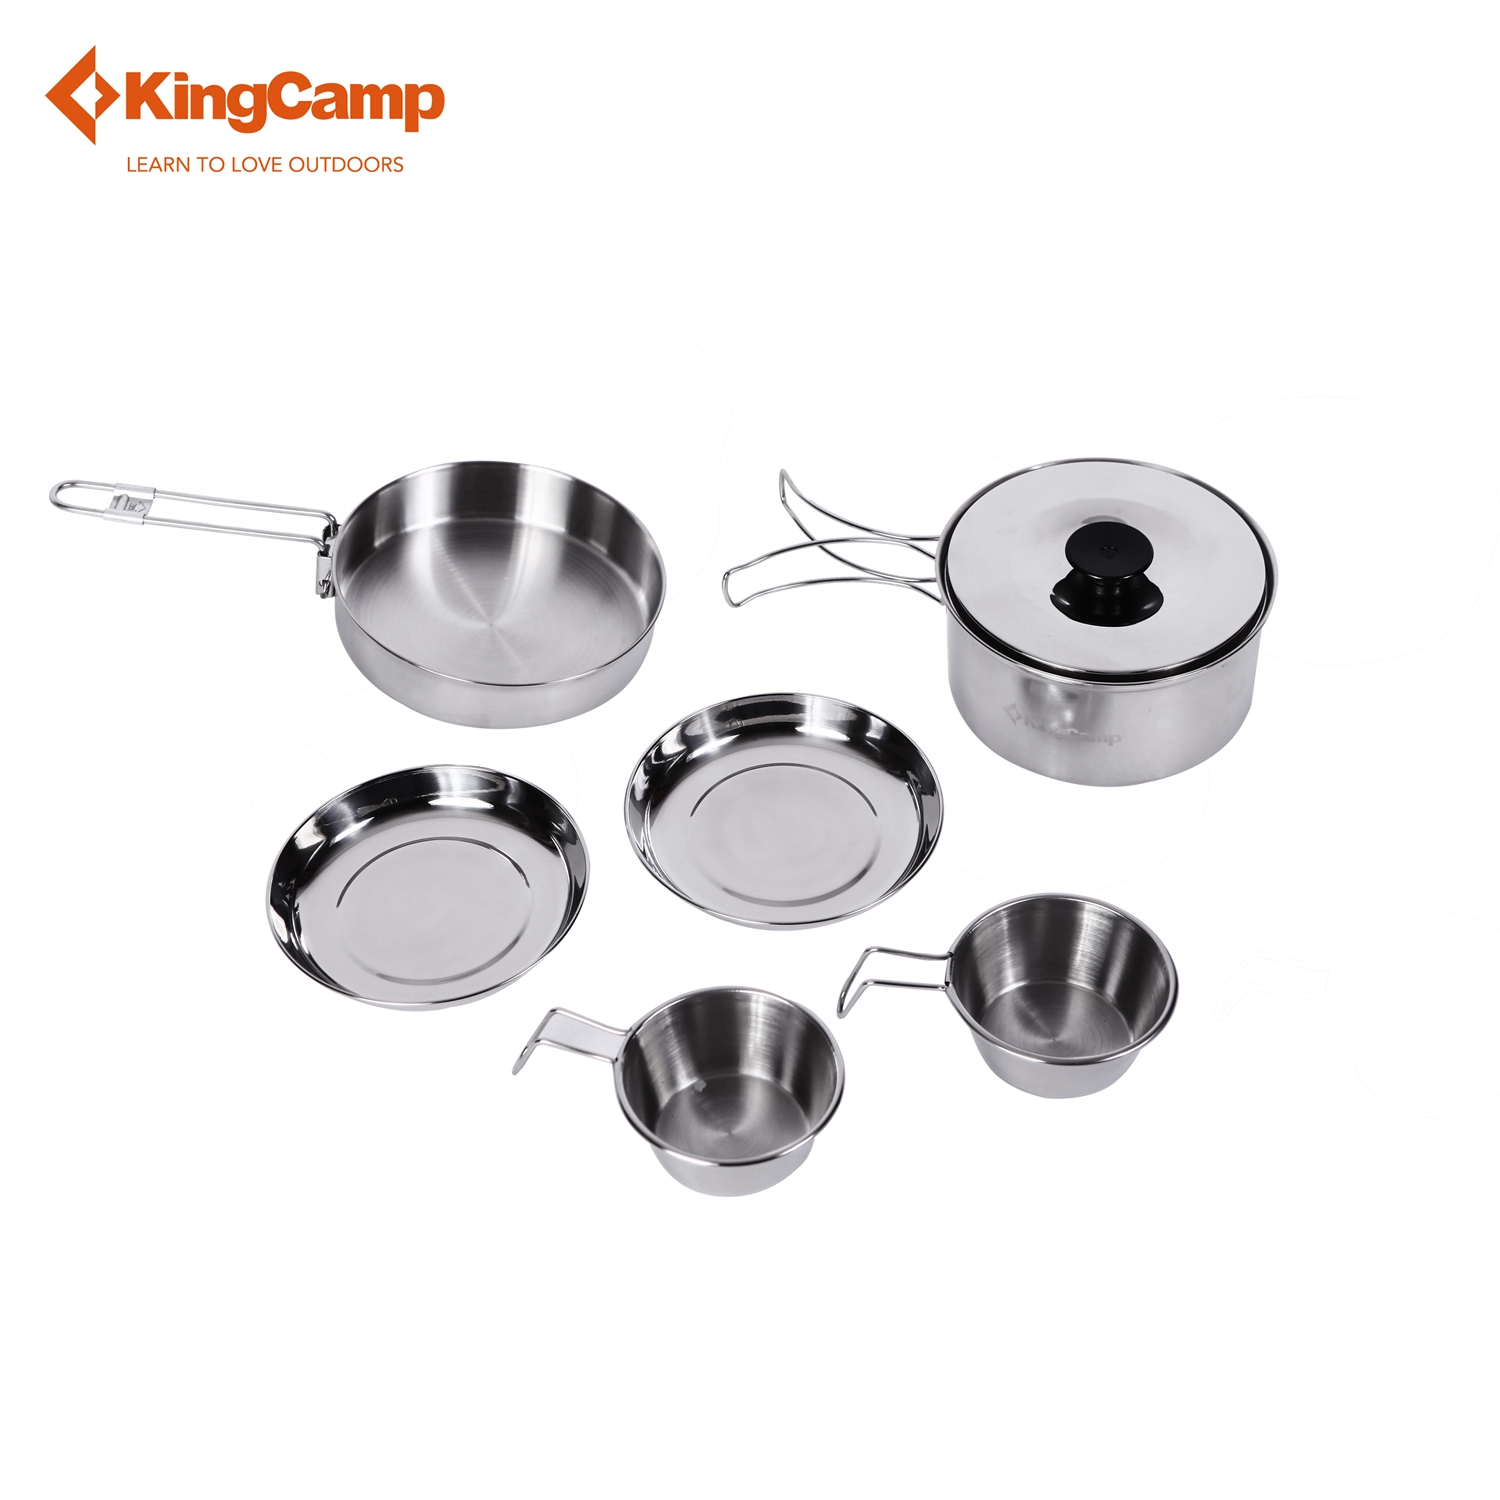 Sports & Entertainment Kingcamp 7pcs Portable Stainless Steel Cookware Set For Camping Hiking Includes Pot Frypan Plates Bowels Carry Bag Dinner Set Outdoor Tablewares